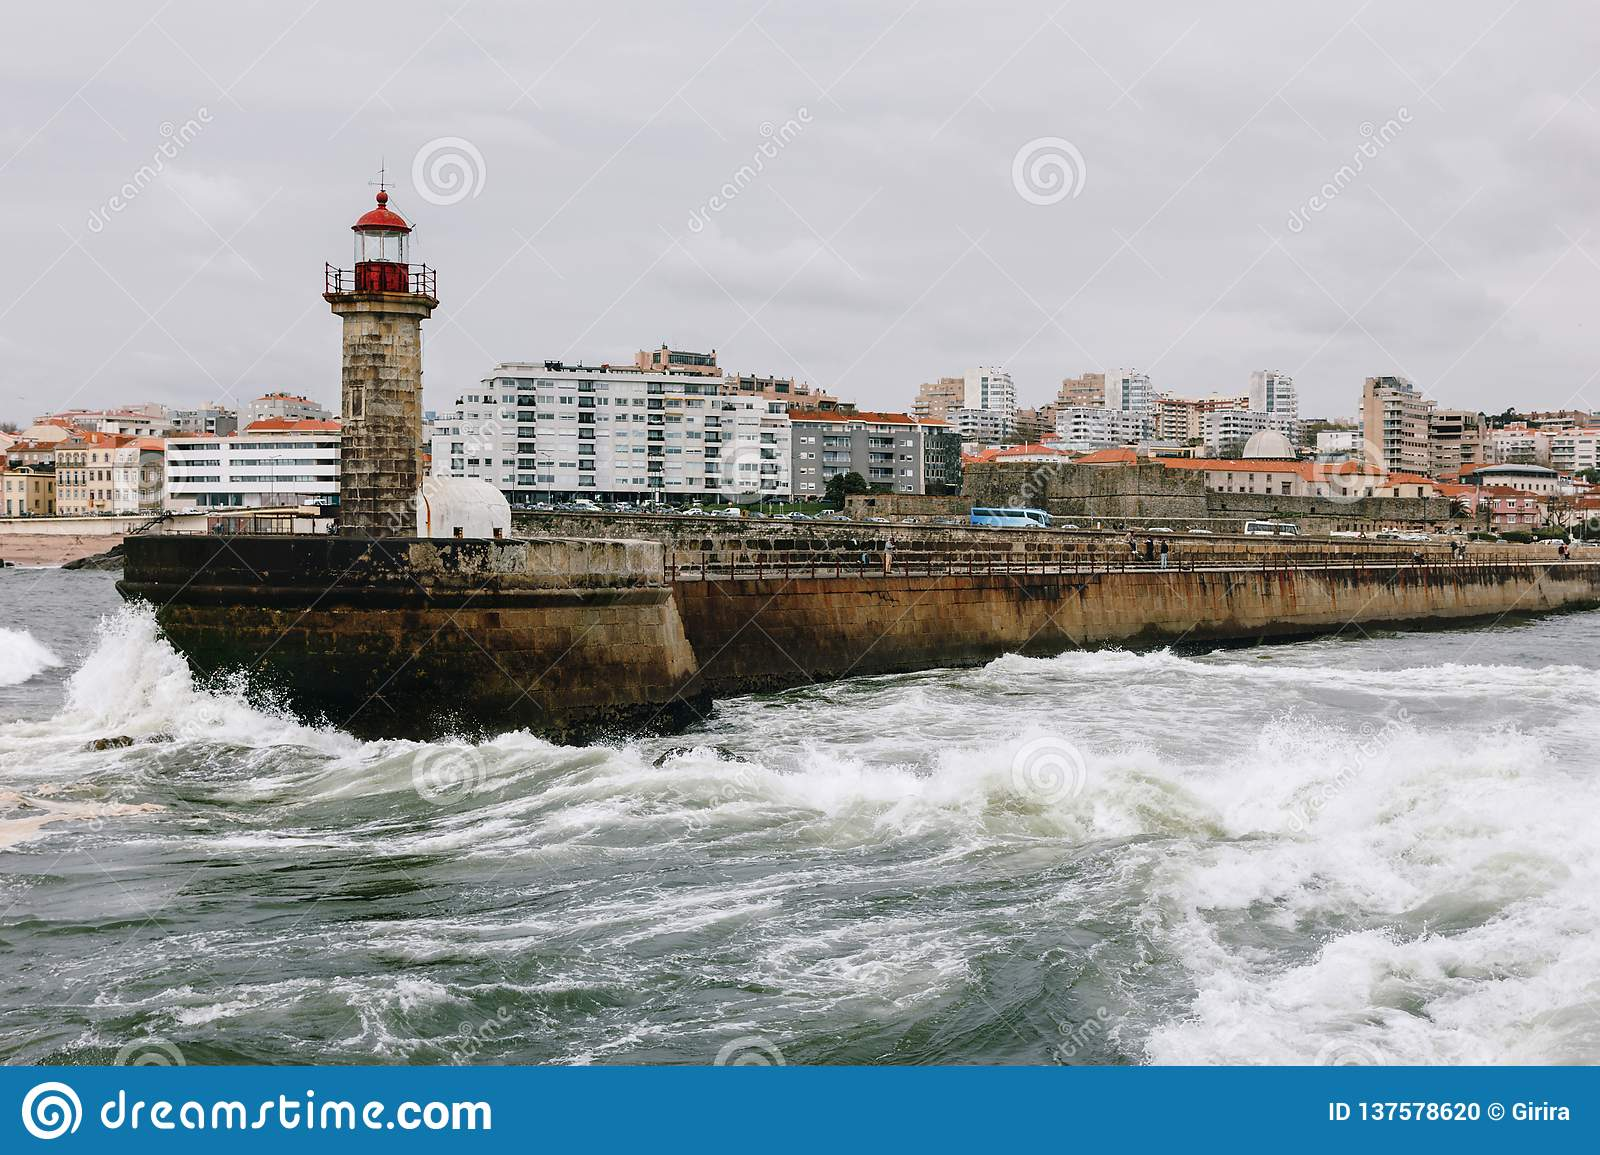 Old lighthouse and granite pier at the mouth of Douro river, Porto